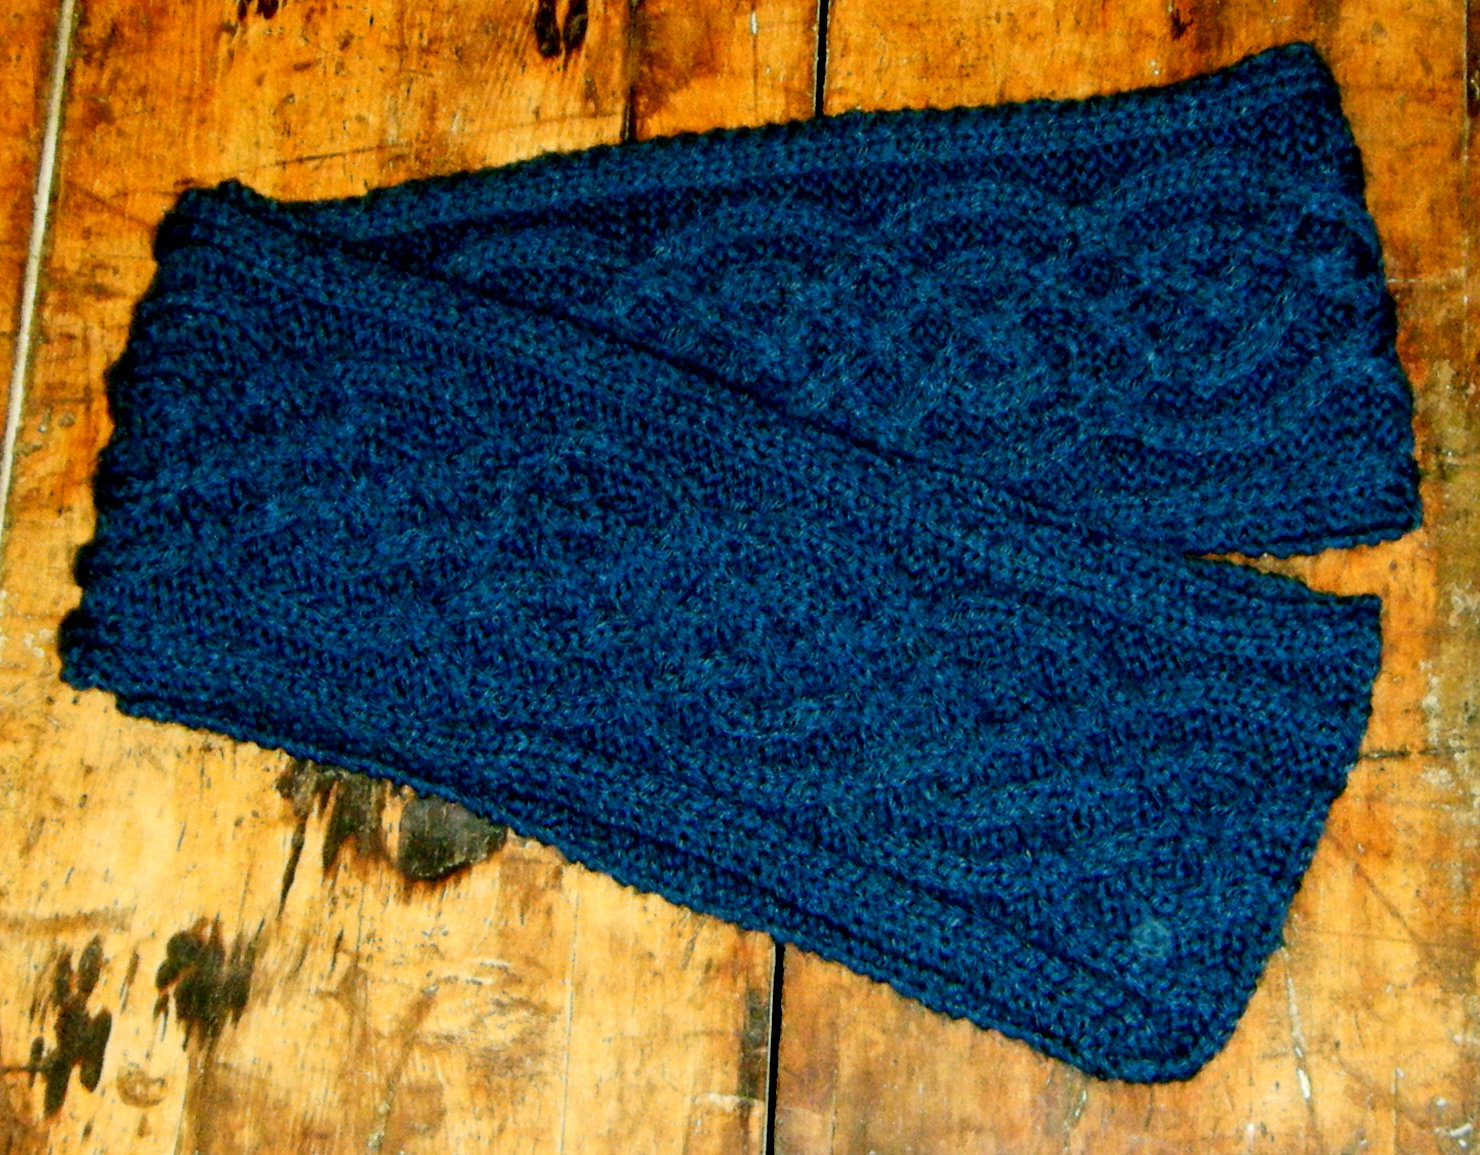 Celtic Knot Scarf Knitting Pattern : Deep Blue Celtic Knot Hand Knitted Scarf on Handmade Artists Shop